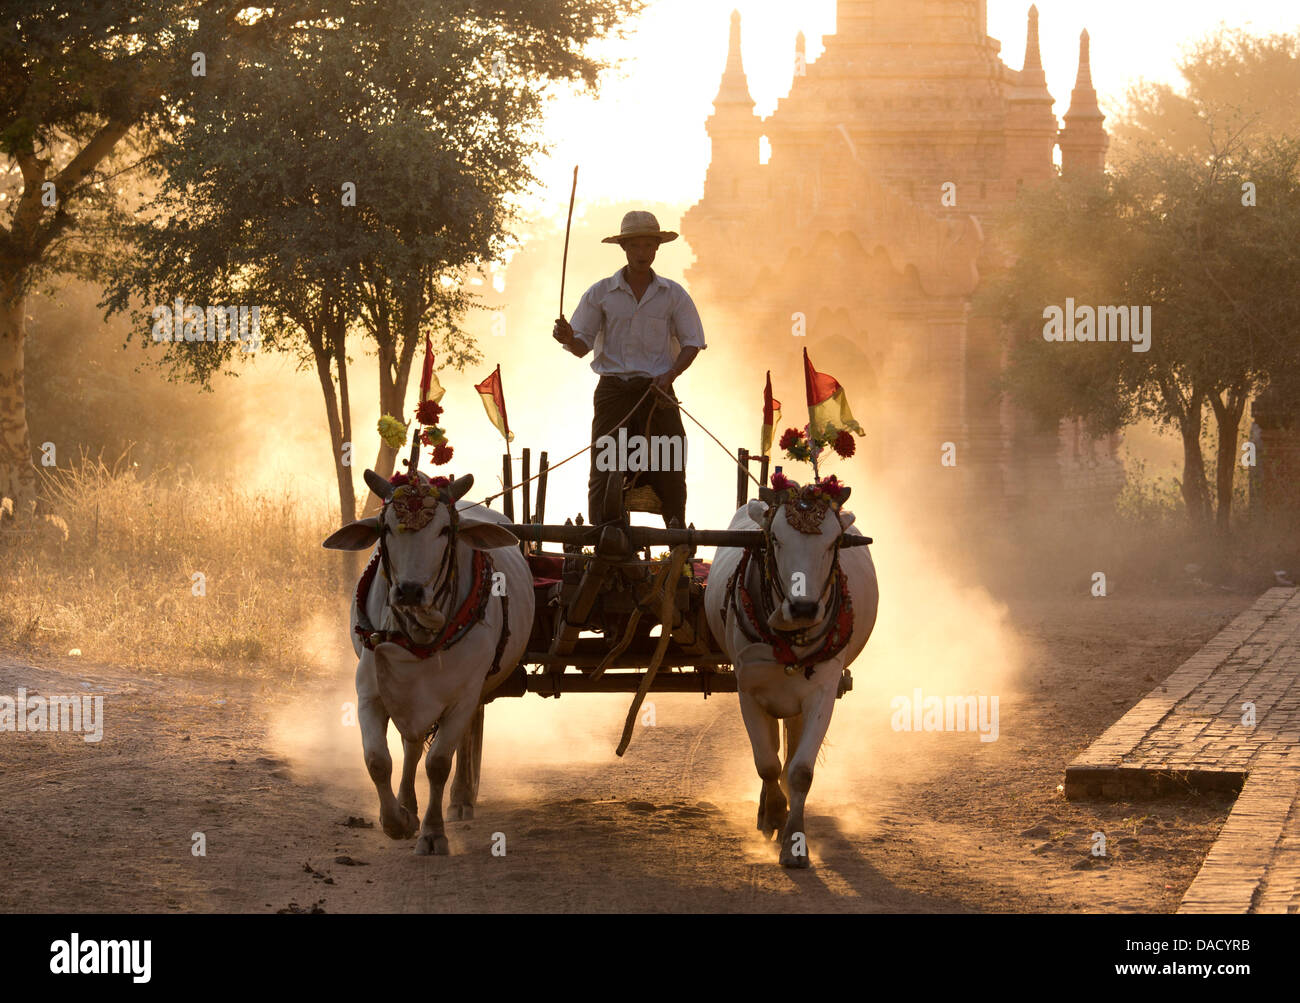 Bullock cart on a dusty track among the temples of Bagan with light from the sun shining through the dust, Bagan, - Stock Image